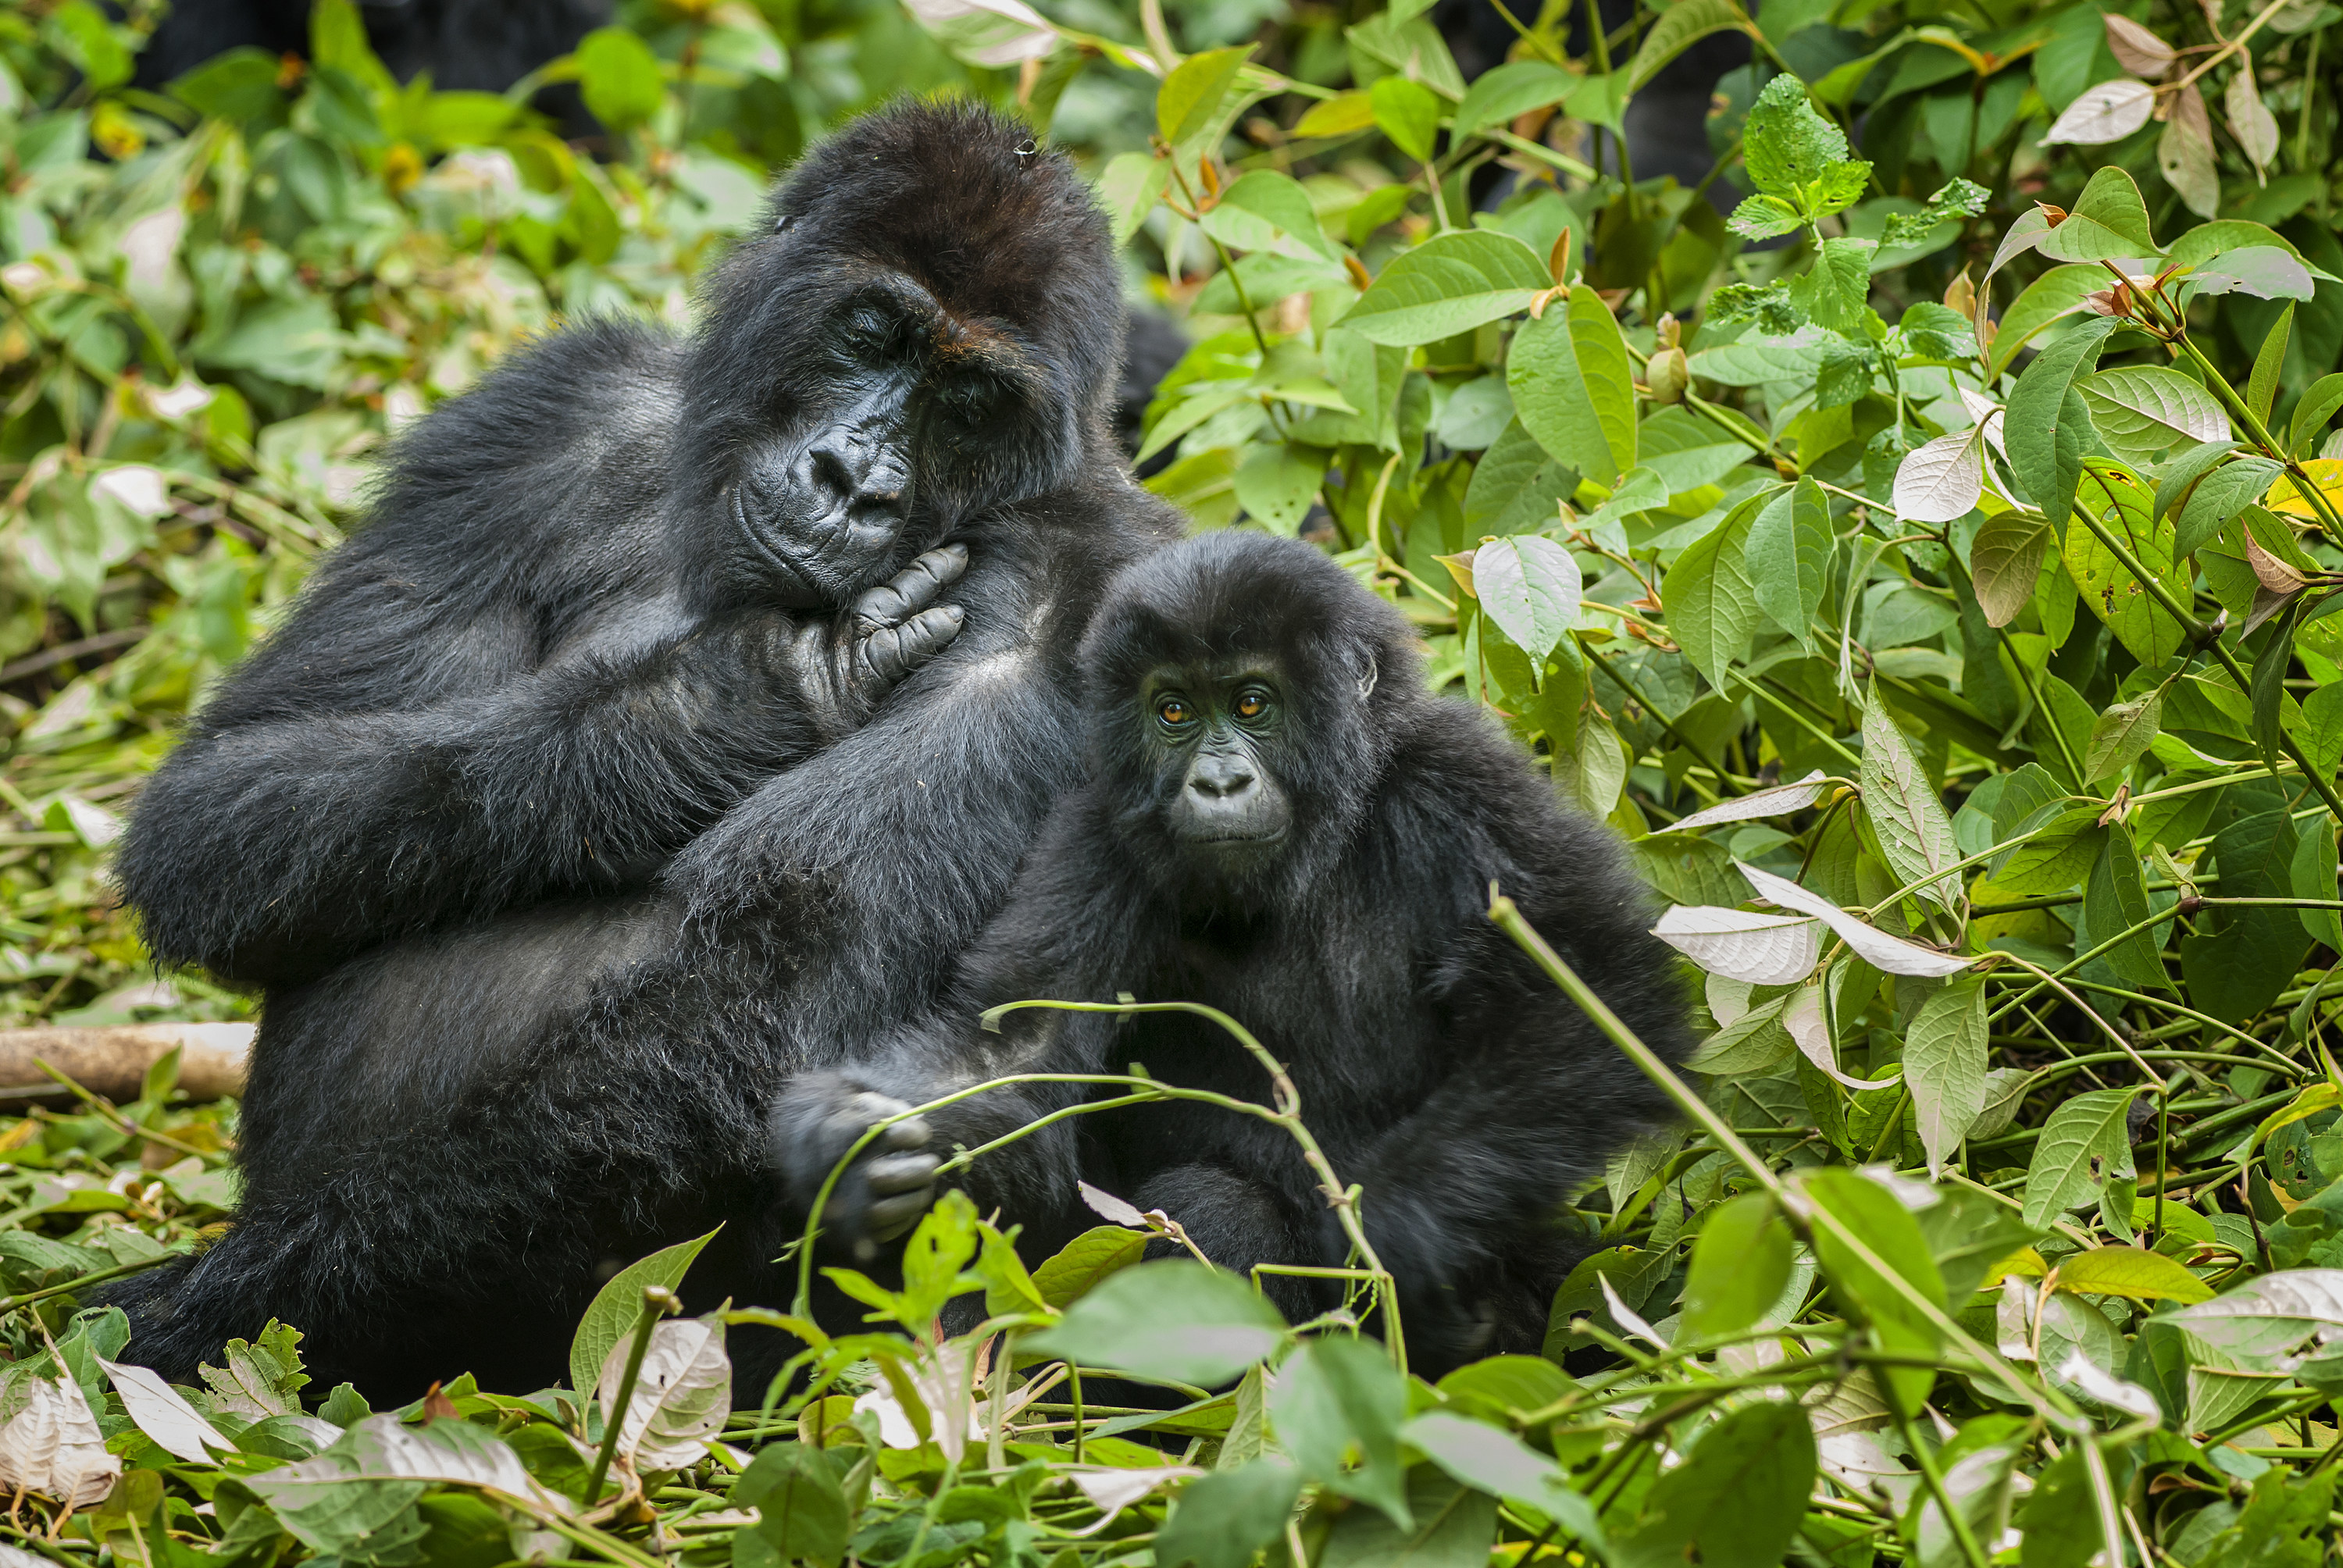 Two gorillas, one large and one small, sit on a leafy area of a forest.